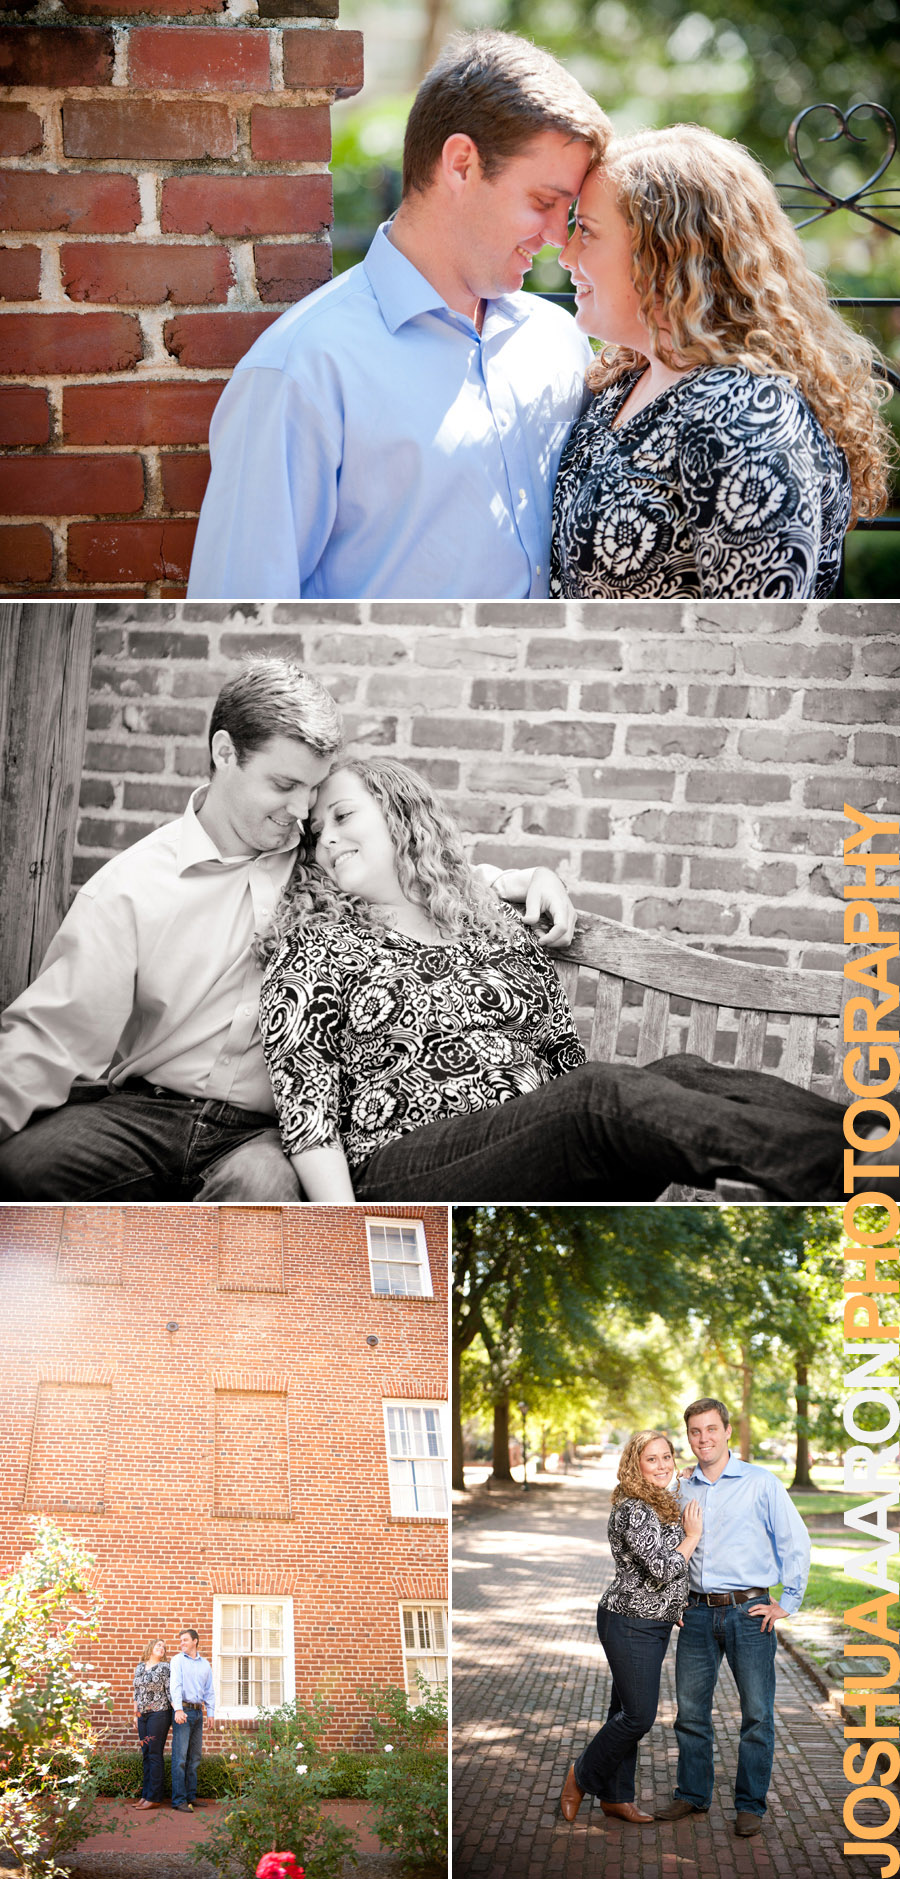 Engagement session at the University of South Carolina